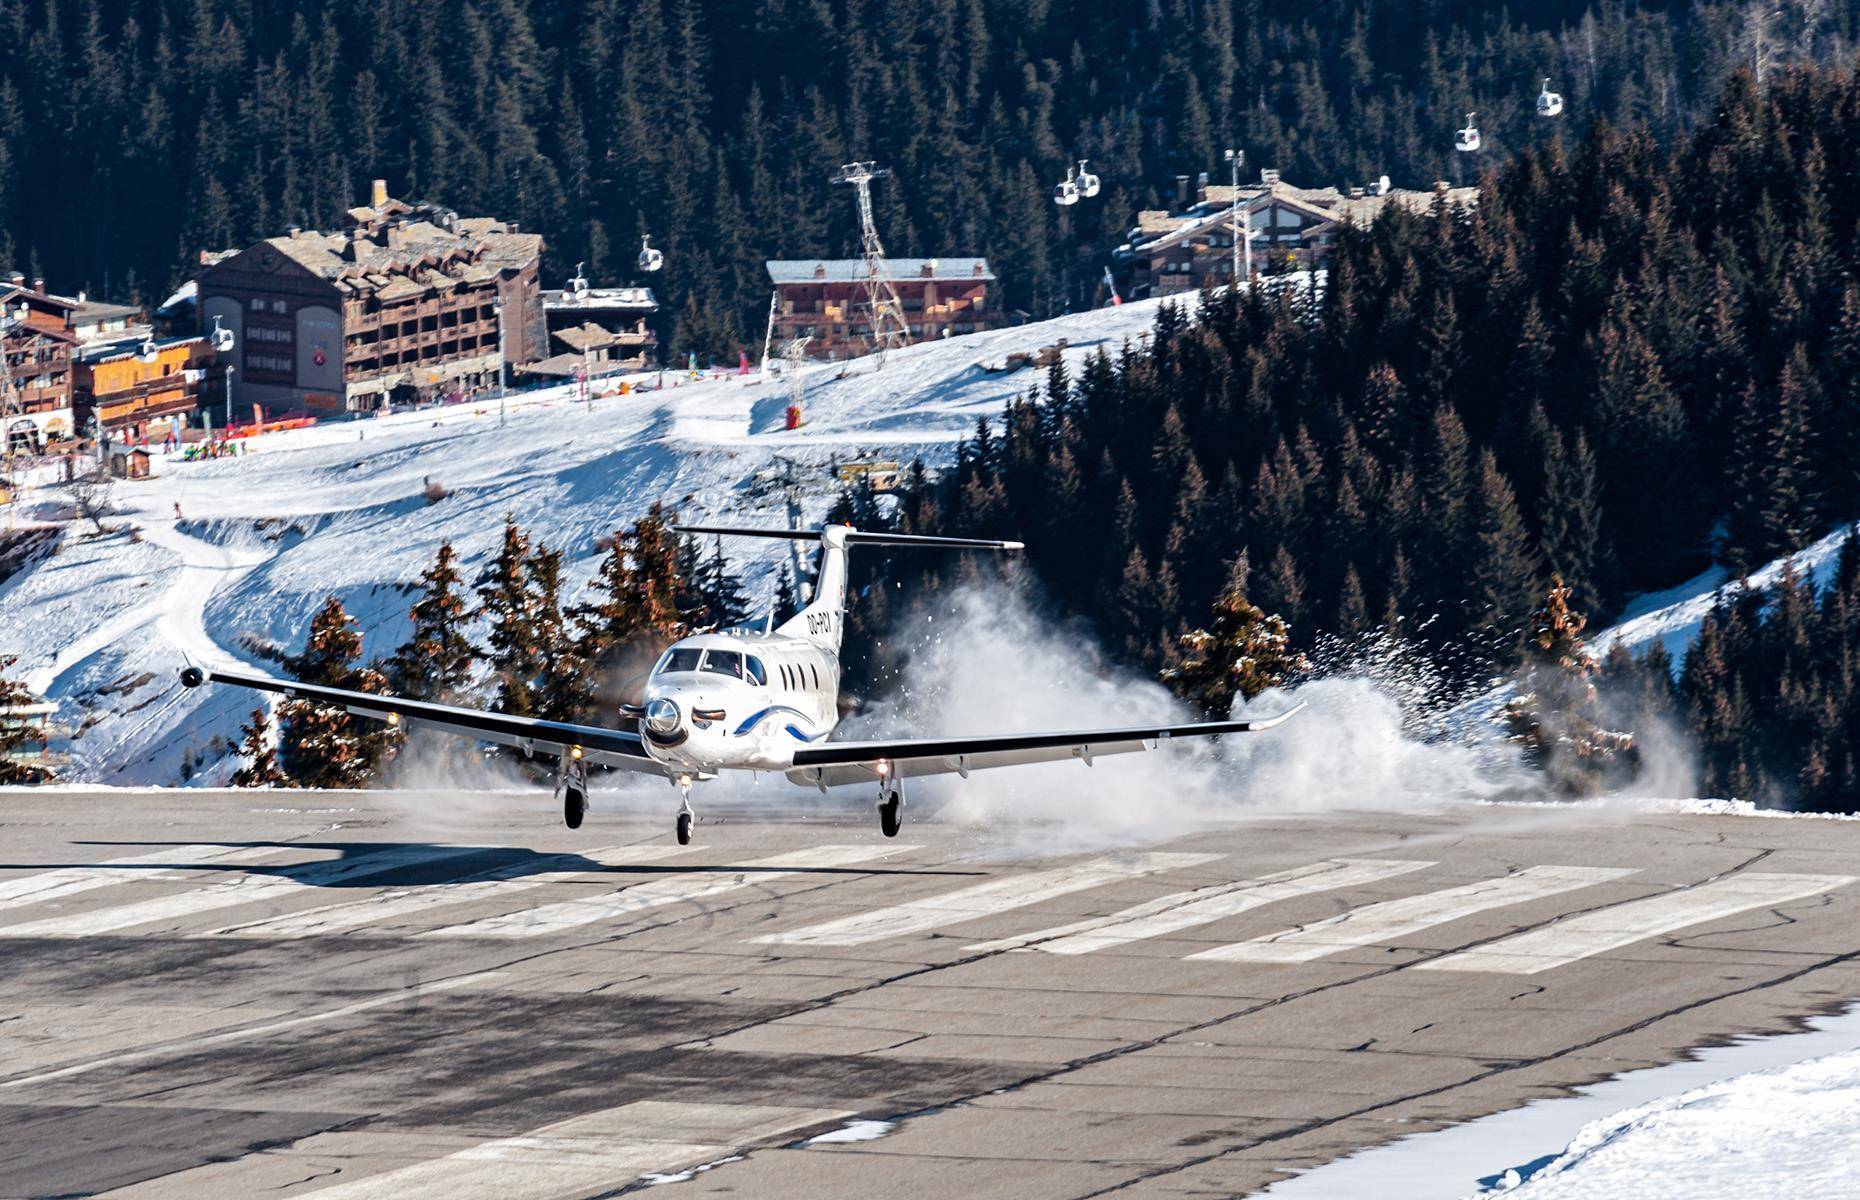 Slide 2 of 31: As if the towering Alps surrounding the French ski resort of Courchevel weren't enough of a challenge for pilots, this altiport (meaning a small airfield at a high altitude) has one of the world's shortest runways at 1,761 feet (537m) long. Not much room for error!